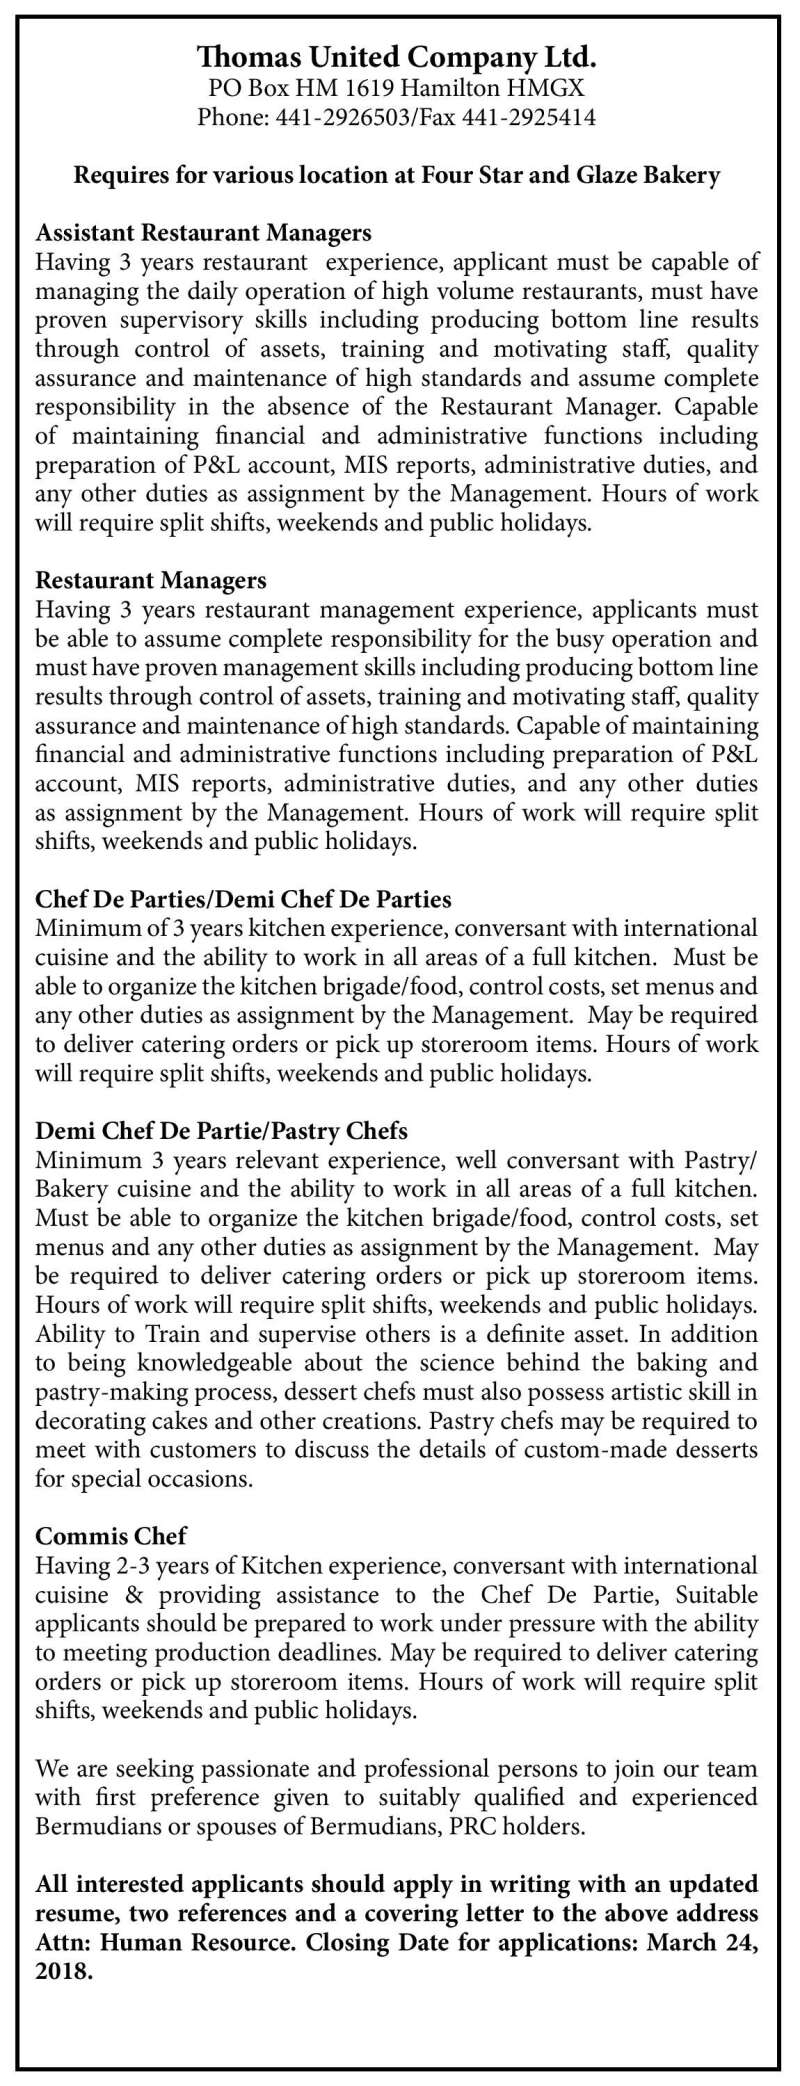 Assistant Managers Restaurant Managers Chef De Parties Demi Chef De Parties Demi Chef De Partie Pastry Chefs Commis Chef The Royal Gazette Bermuda News Business Sports Events Amp Community